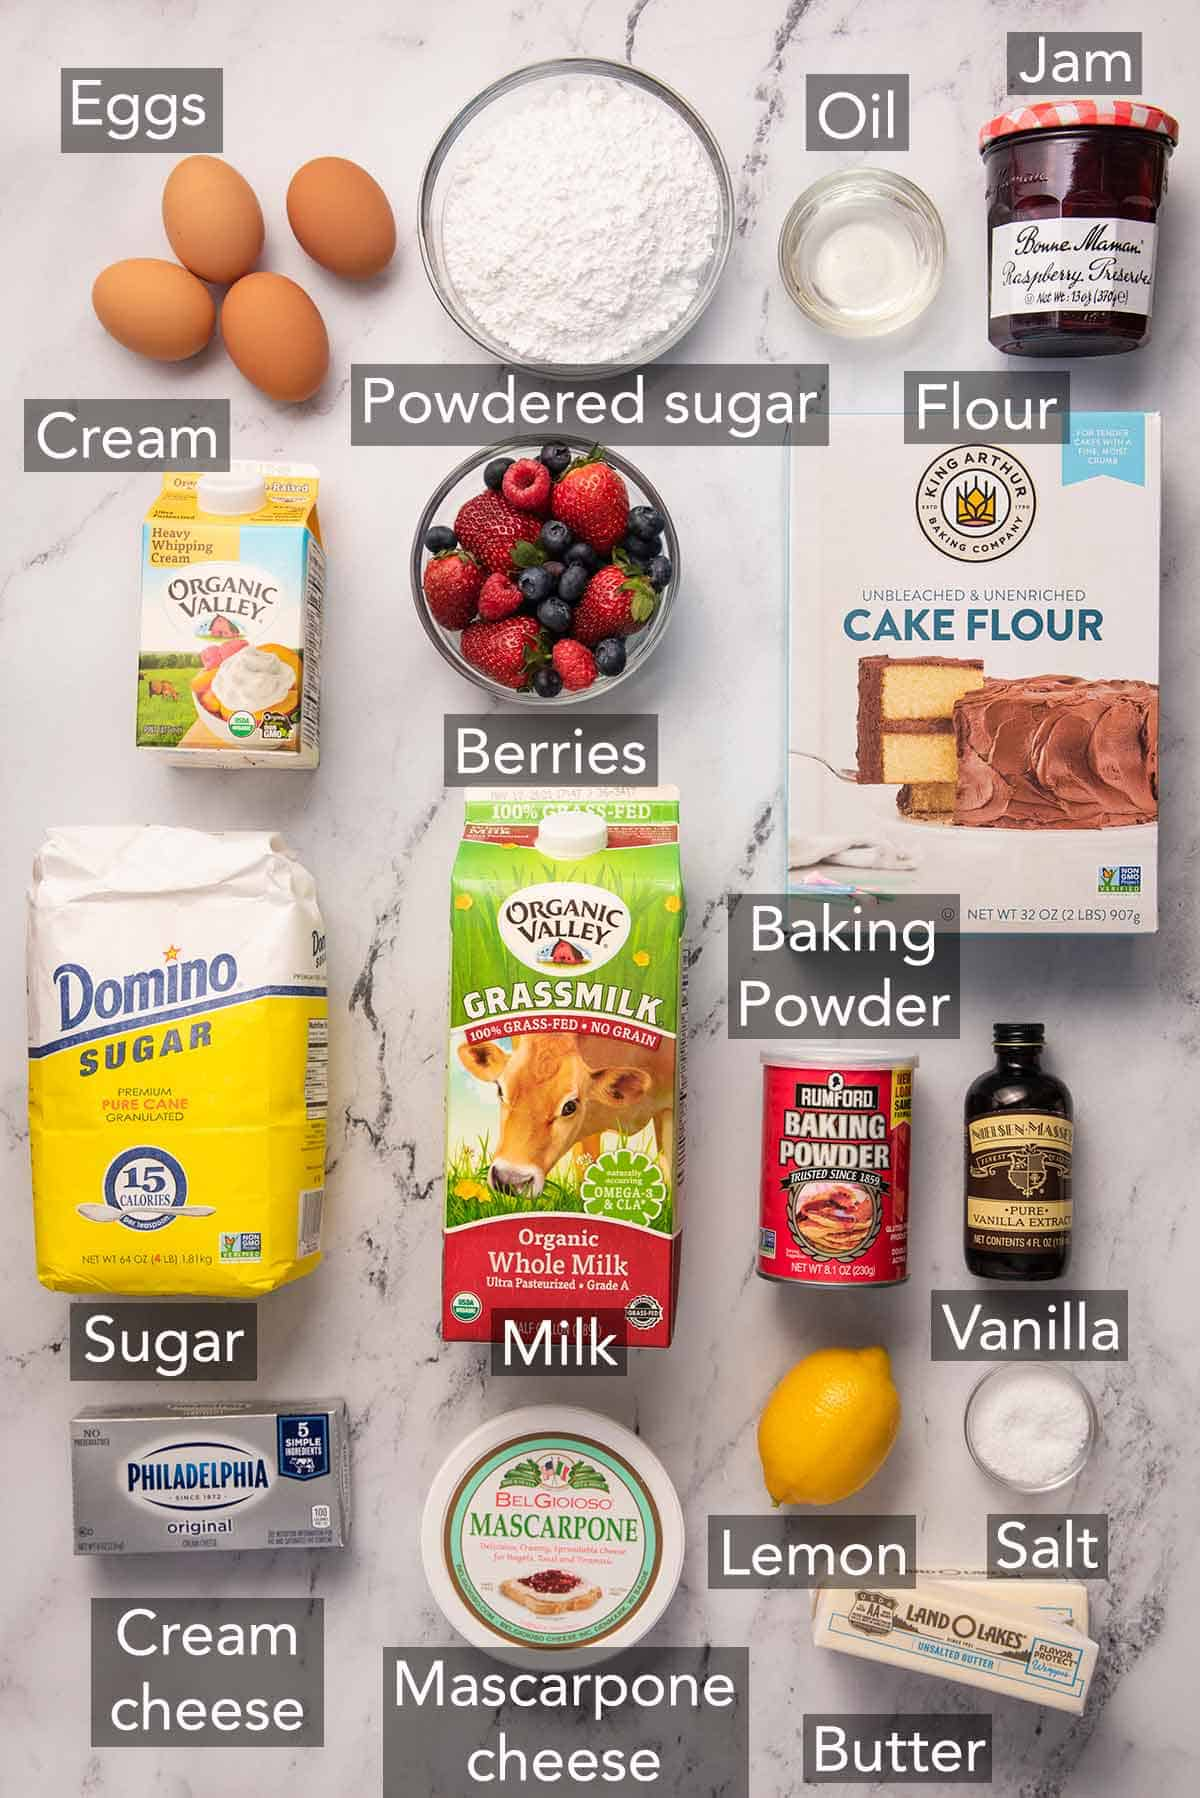 Ingredients needed to make Chantilly cake.